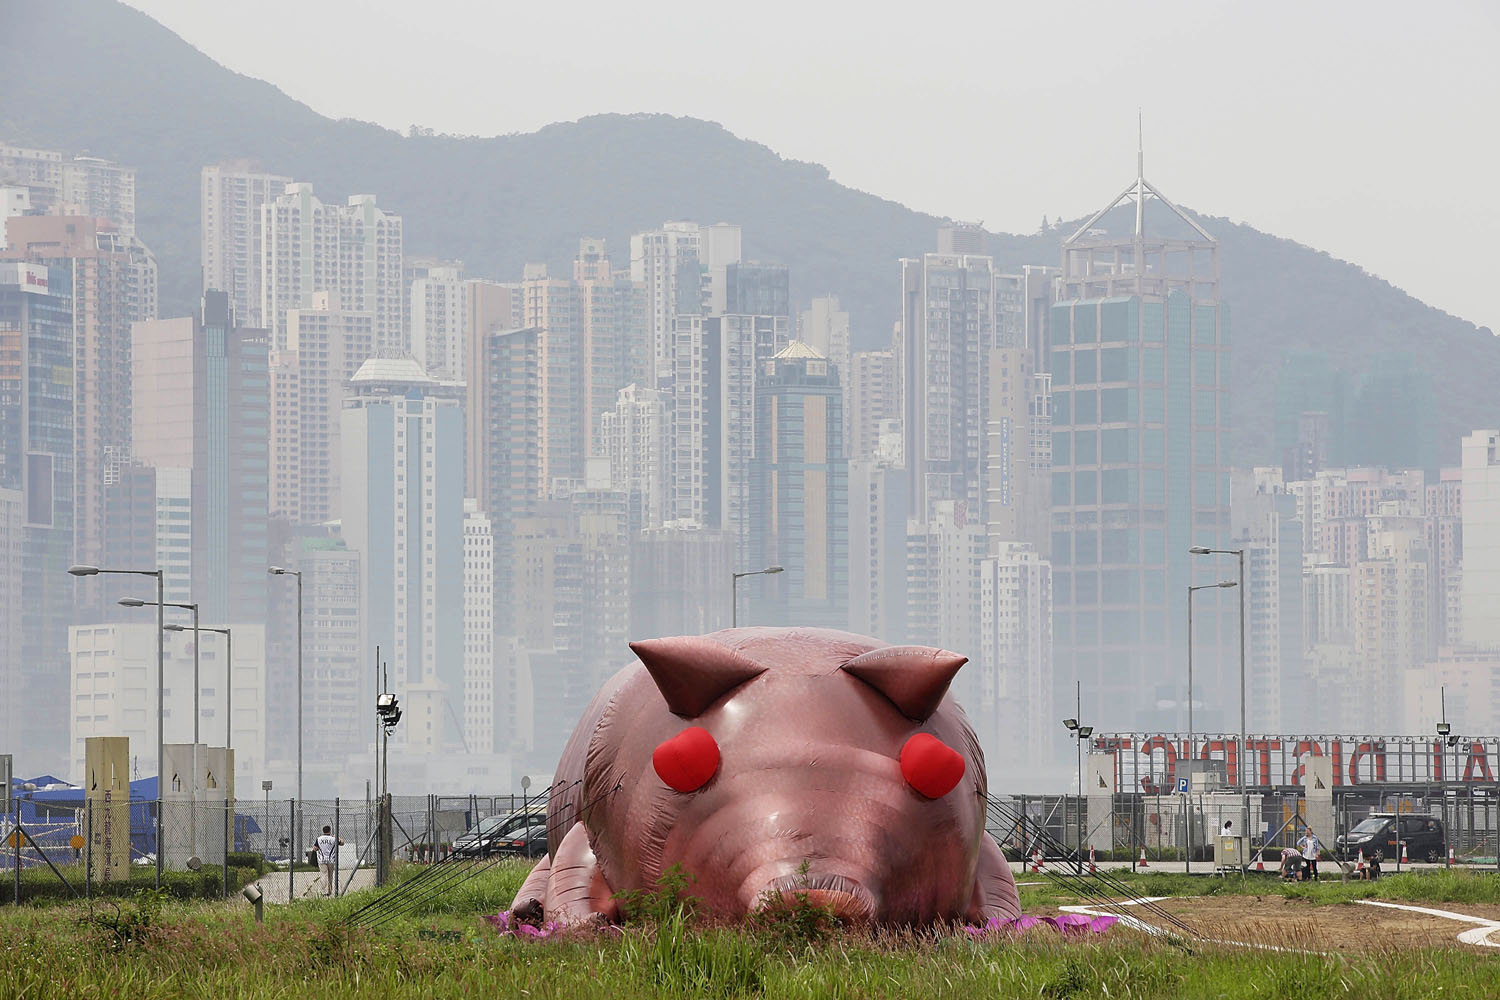 April 24, 2013. An inflatable sculpture of a pig called 'House of Treasures' by Chinese contemporary artist Cao Fei on display as part of the 'Inflation!' exhibition curated by Mobile M + in Hong Kong.